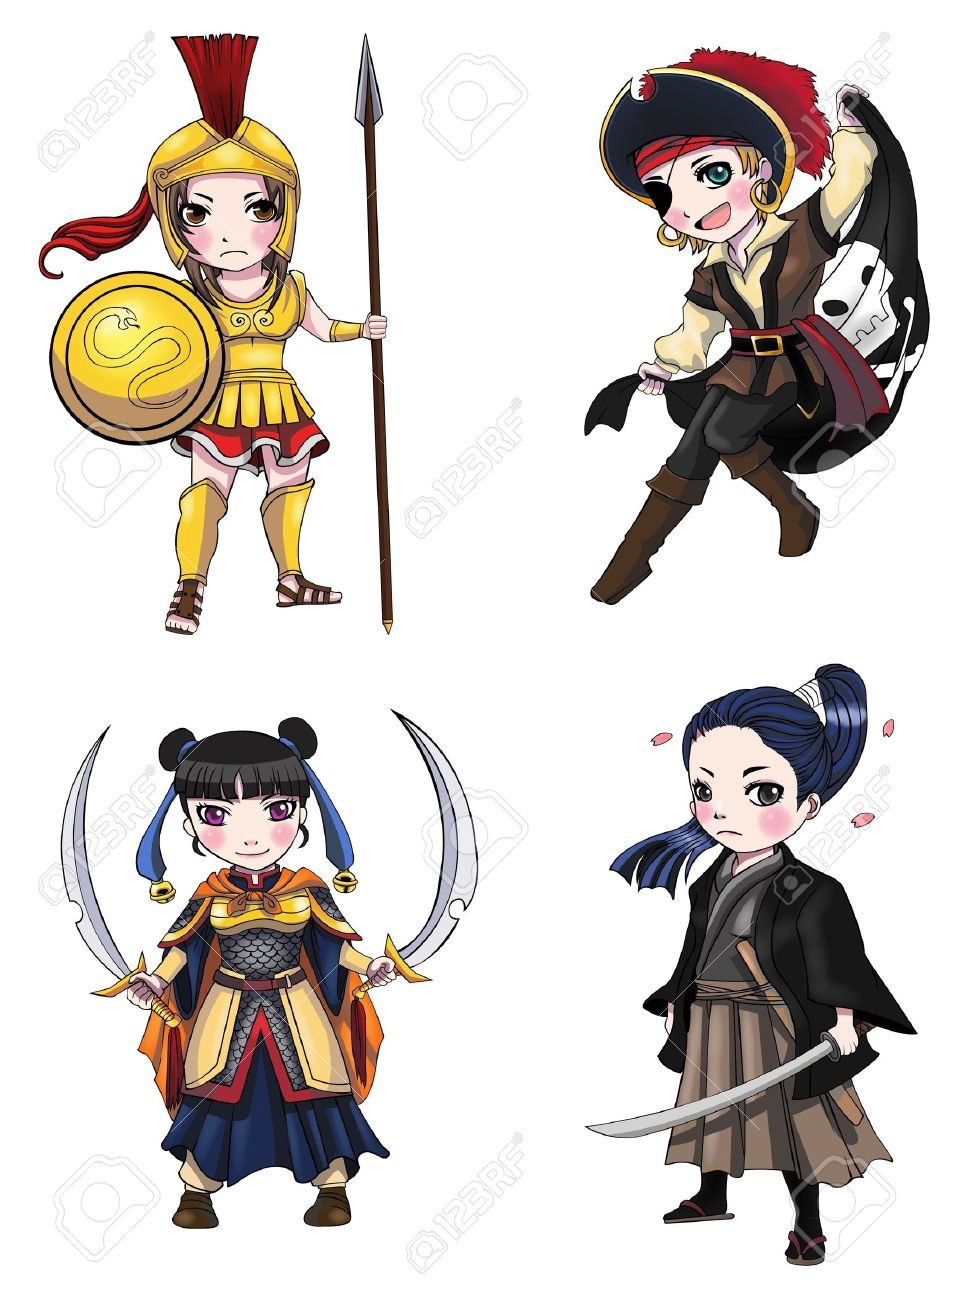 Woman Warrior clipart #17, Download drawings